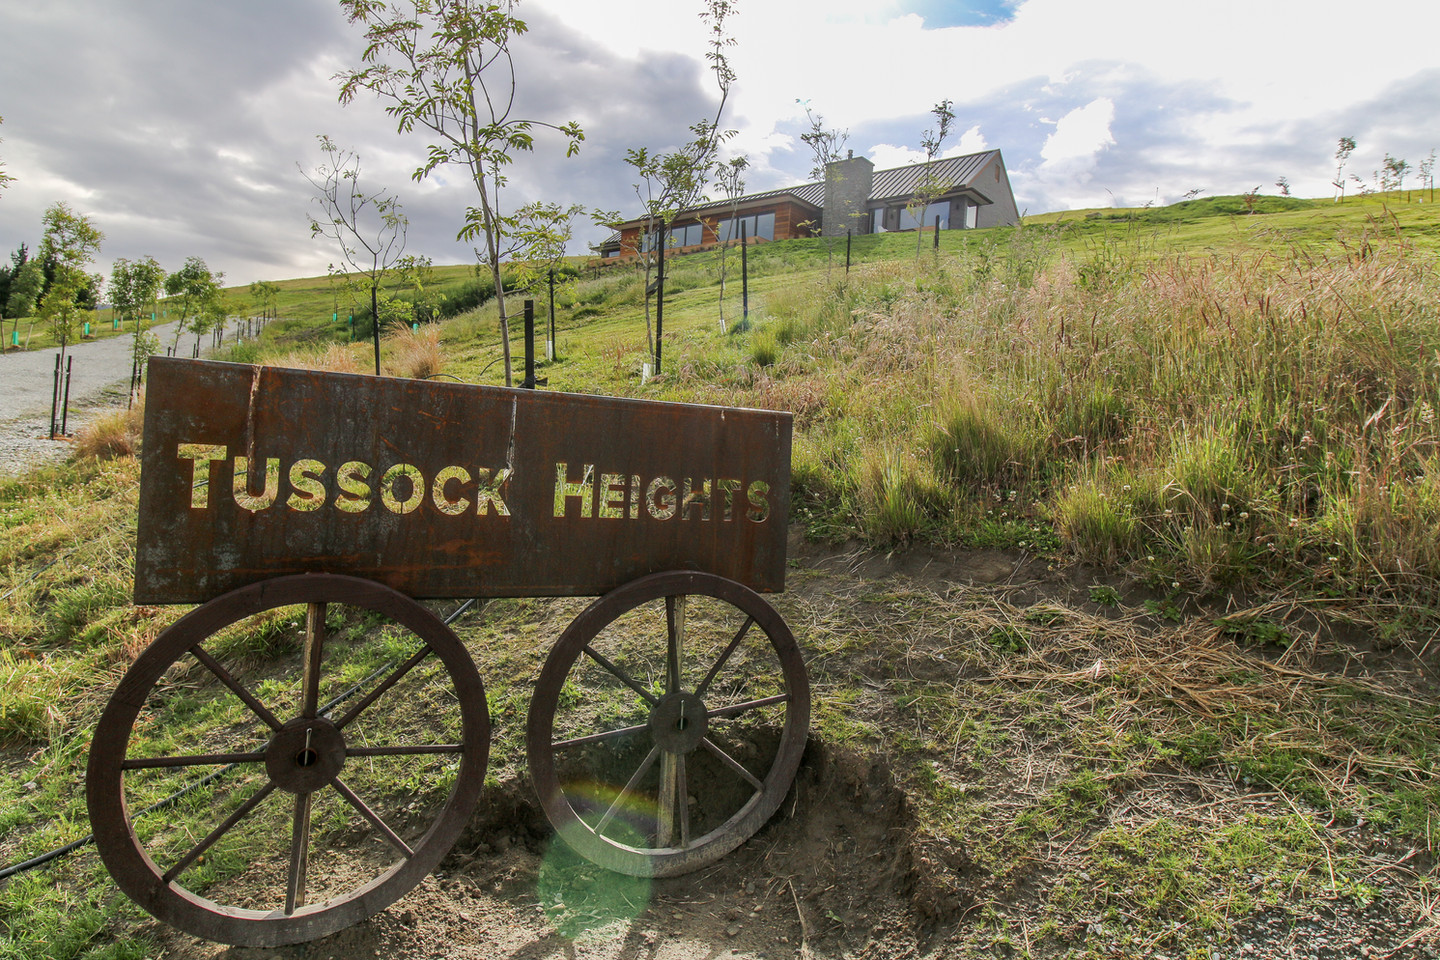 Entry to Tussock Heights